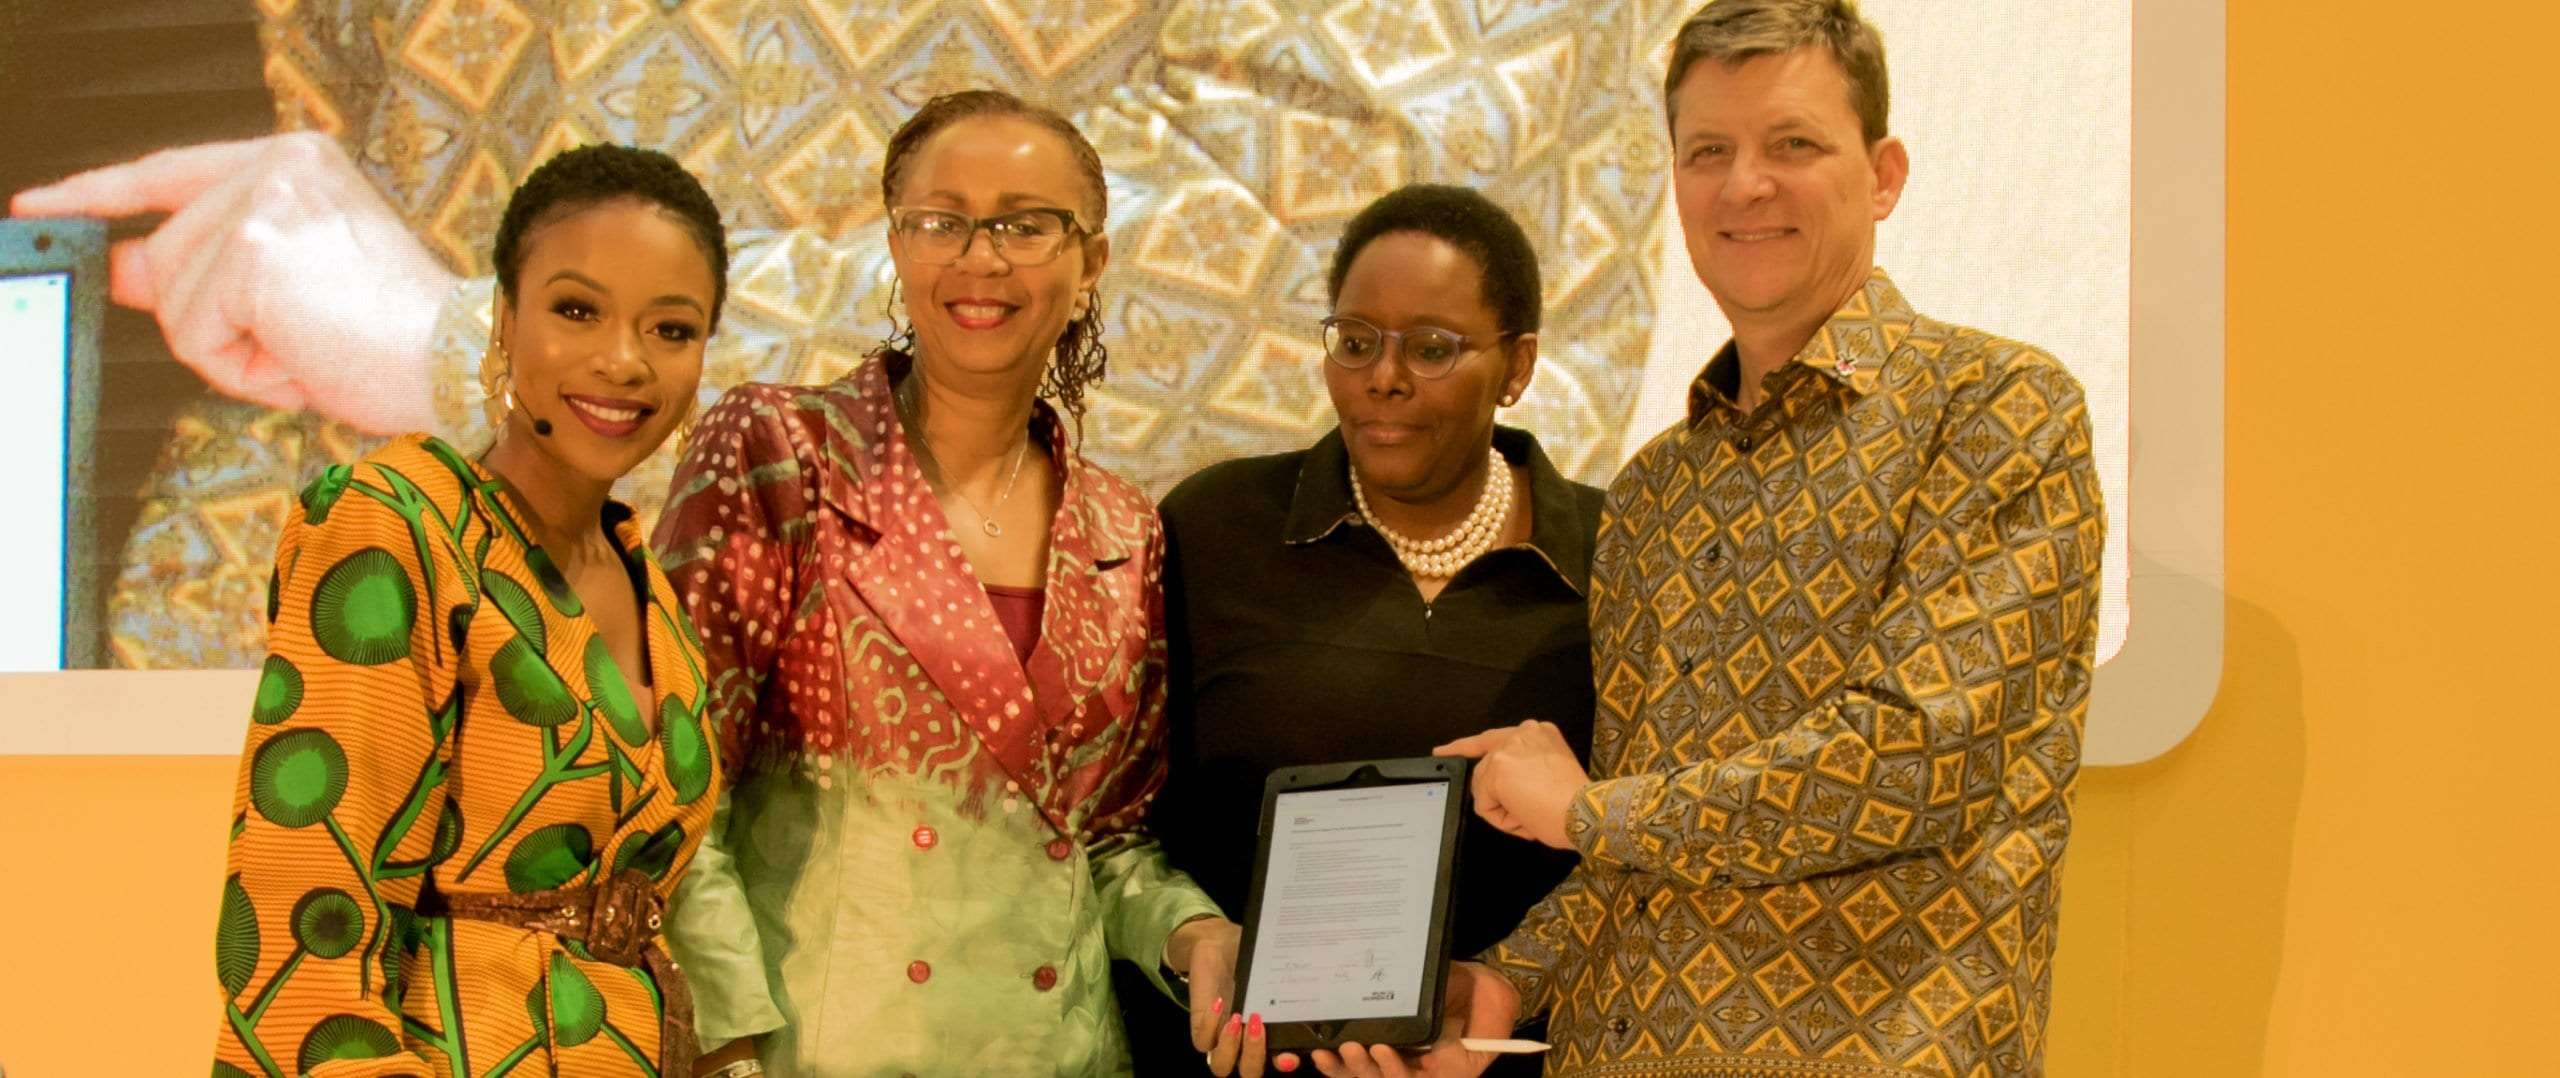 L-R: Nomzamo Mbatha - Human Rights Activist; Anne Githuku-Shongwe - Resident Director UN Women; Felleng Sekha - MTN Group Chief Regulatory and Corporate Affairs Officer; Rob Shuter - MTN Group President and CEO